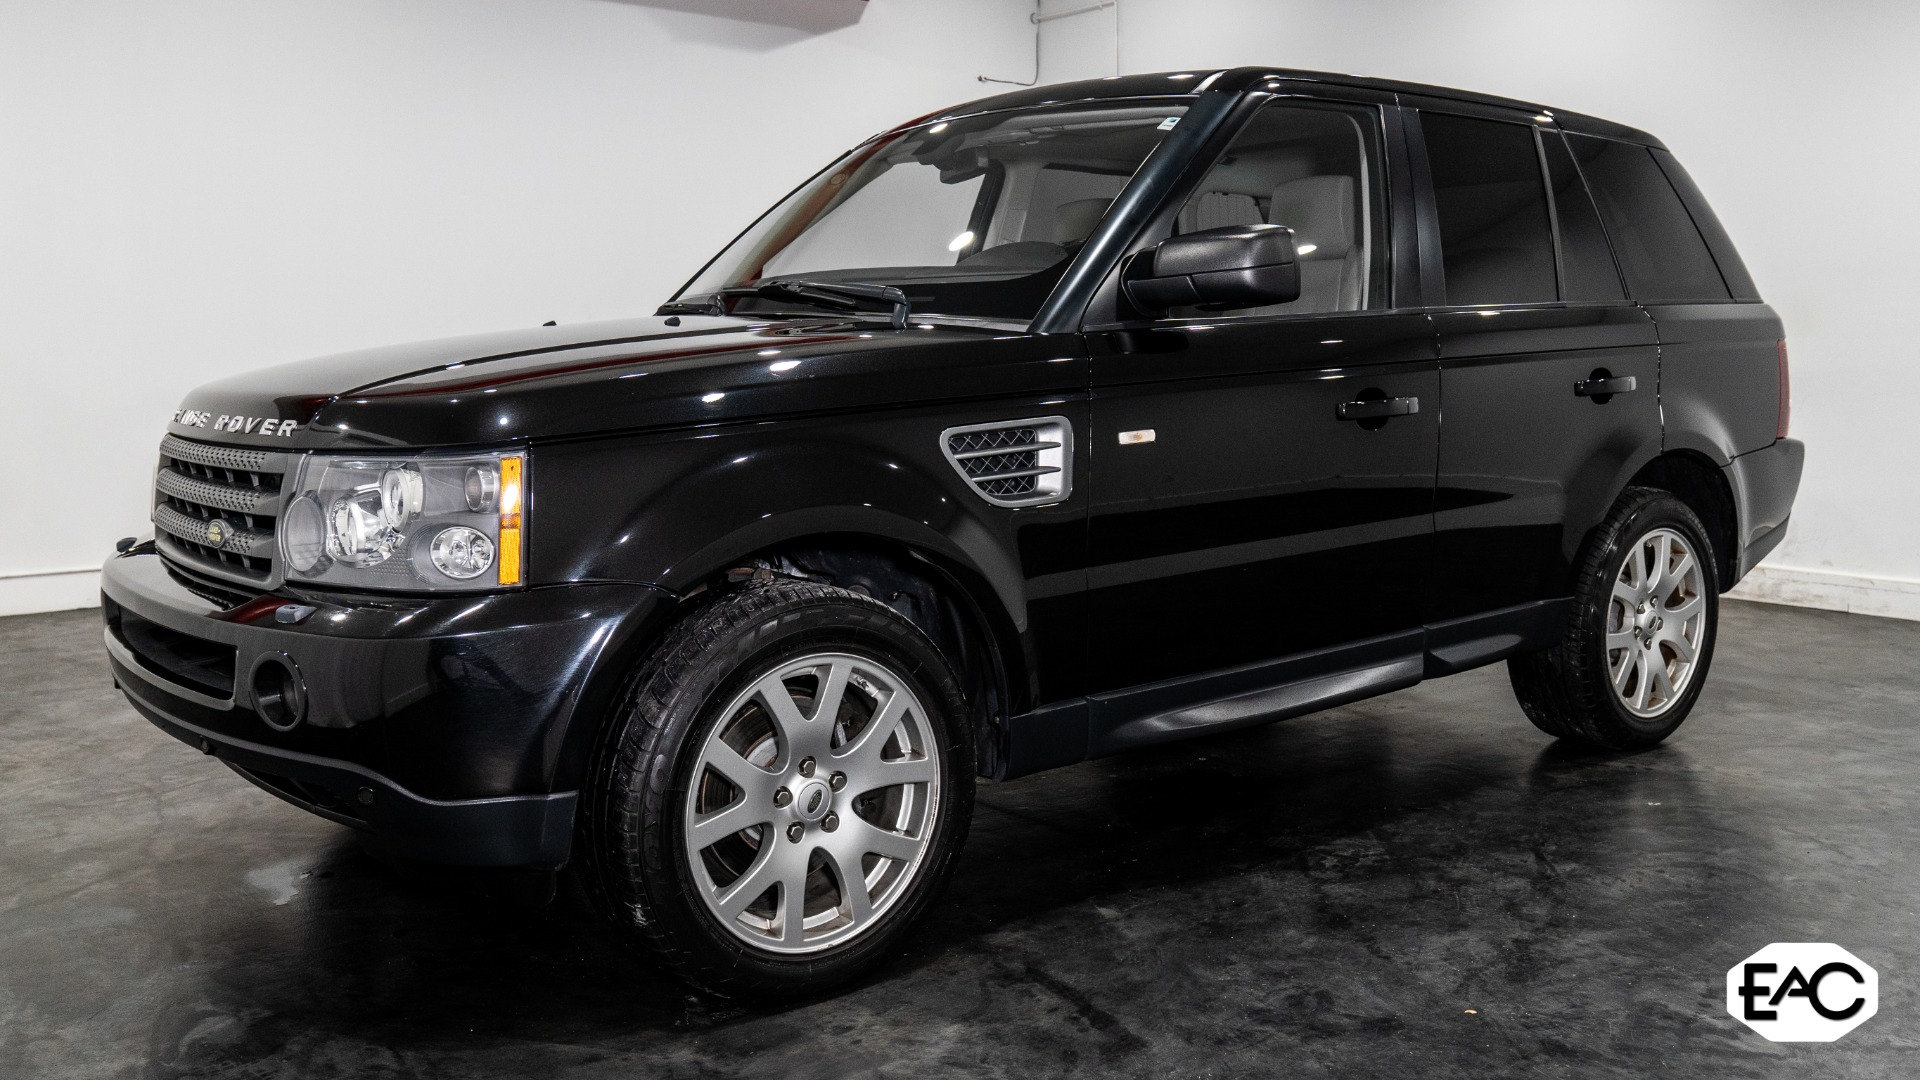 Used 2009 Land Rover Range Rover Sport HSE for sale Sold at Empire Auto Collection in Warren MI 48091 1